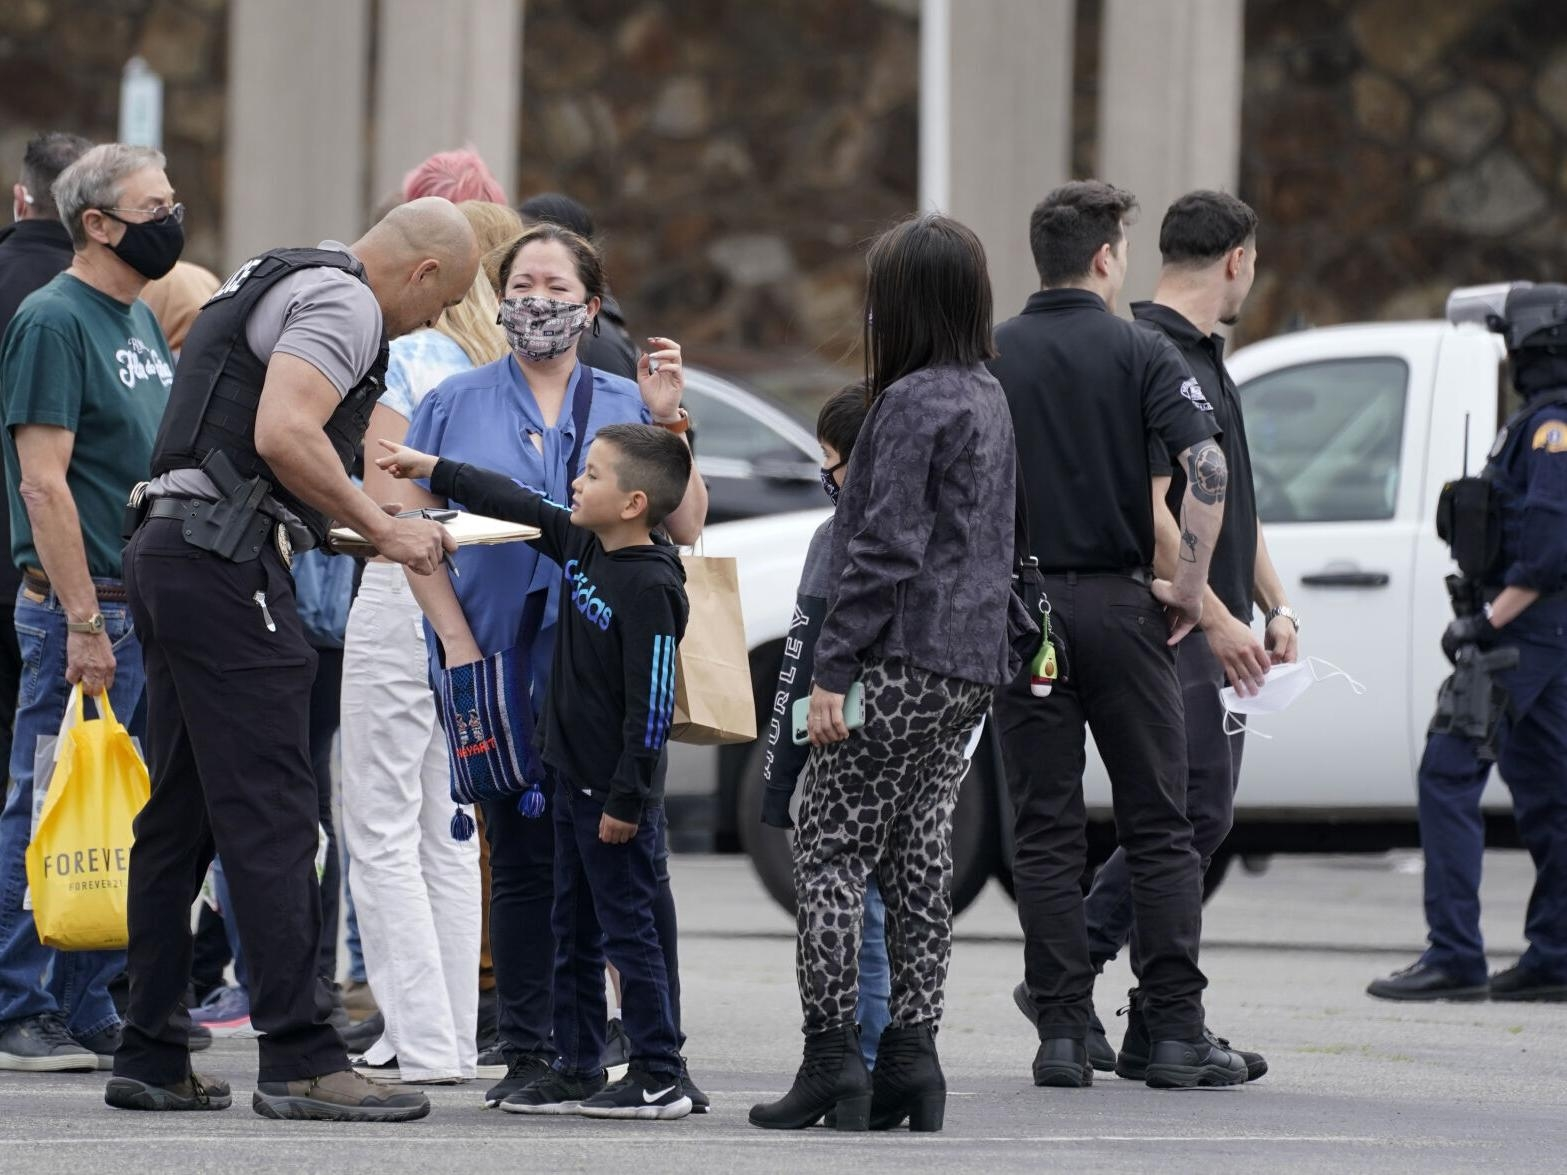 Police: 3 hurt in Florida mall shooting as shoppers scatter